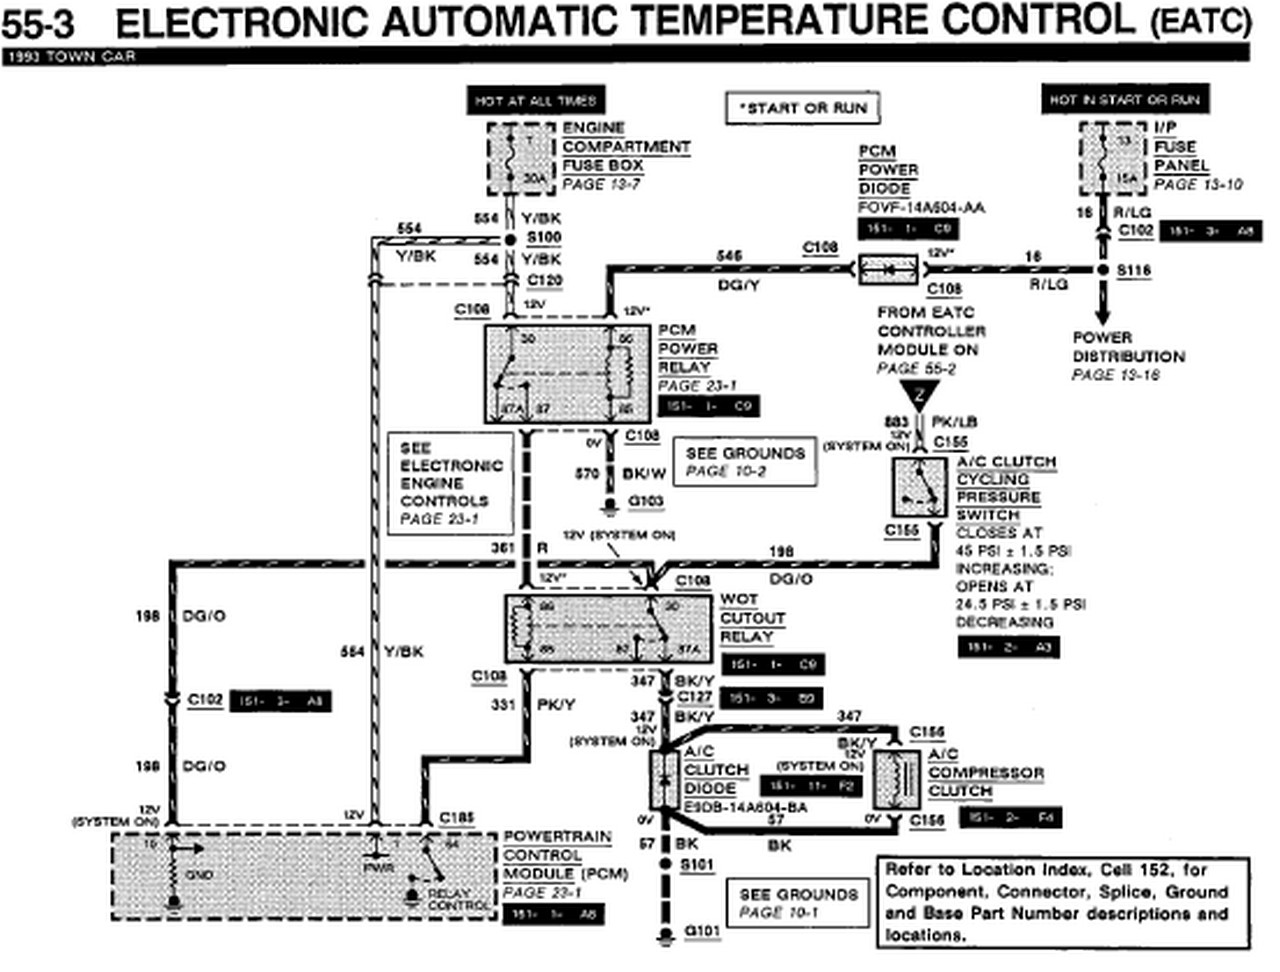 1993 lincoln town car eatc wiring diagram